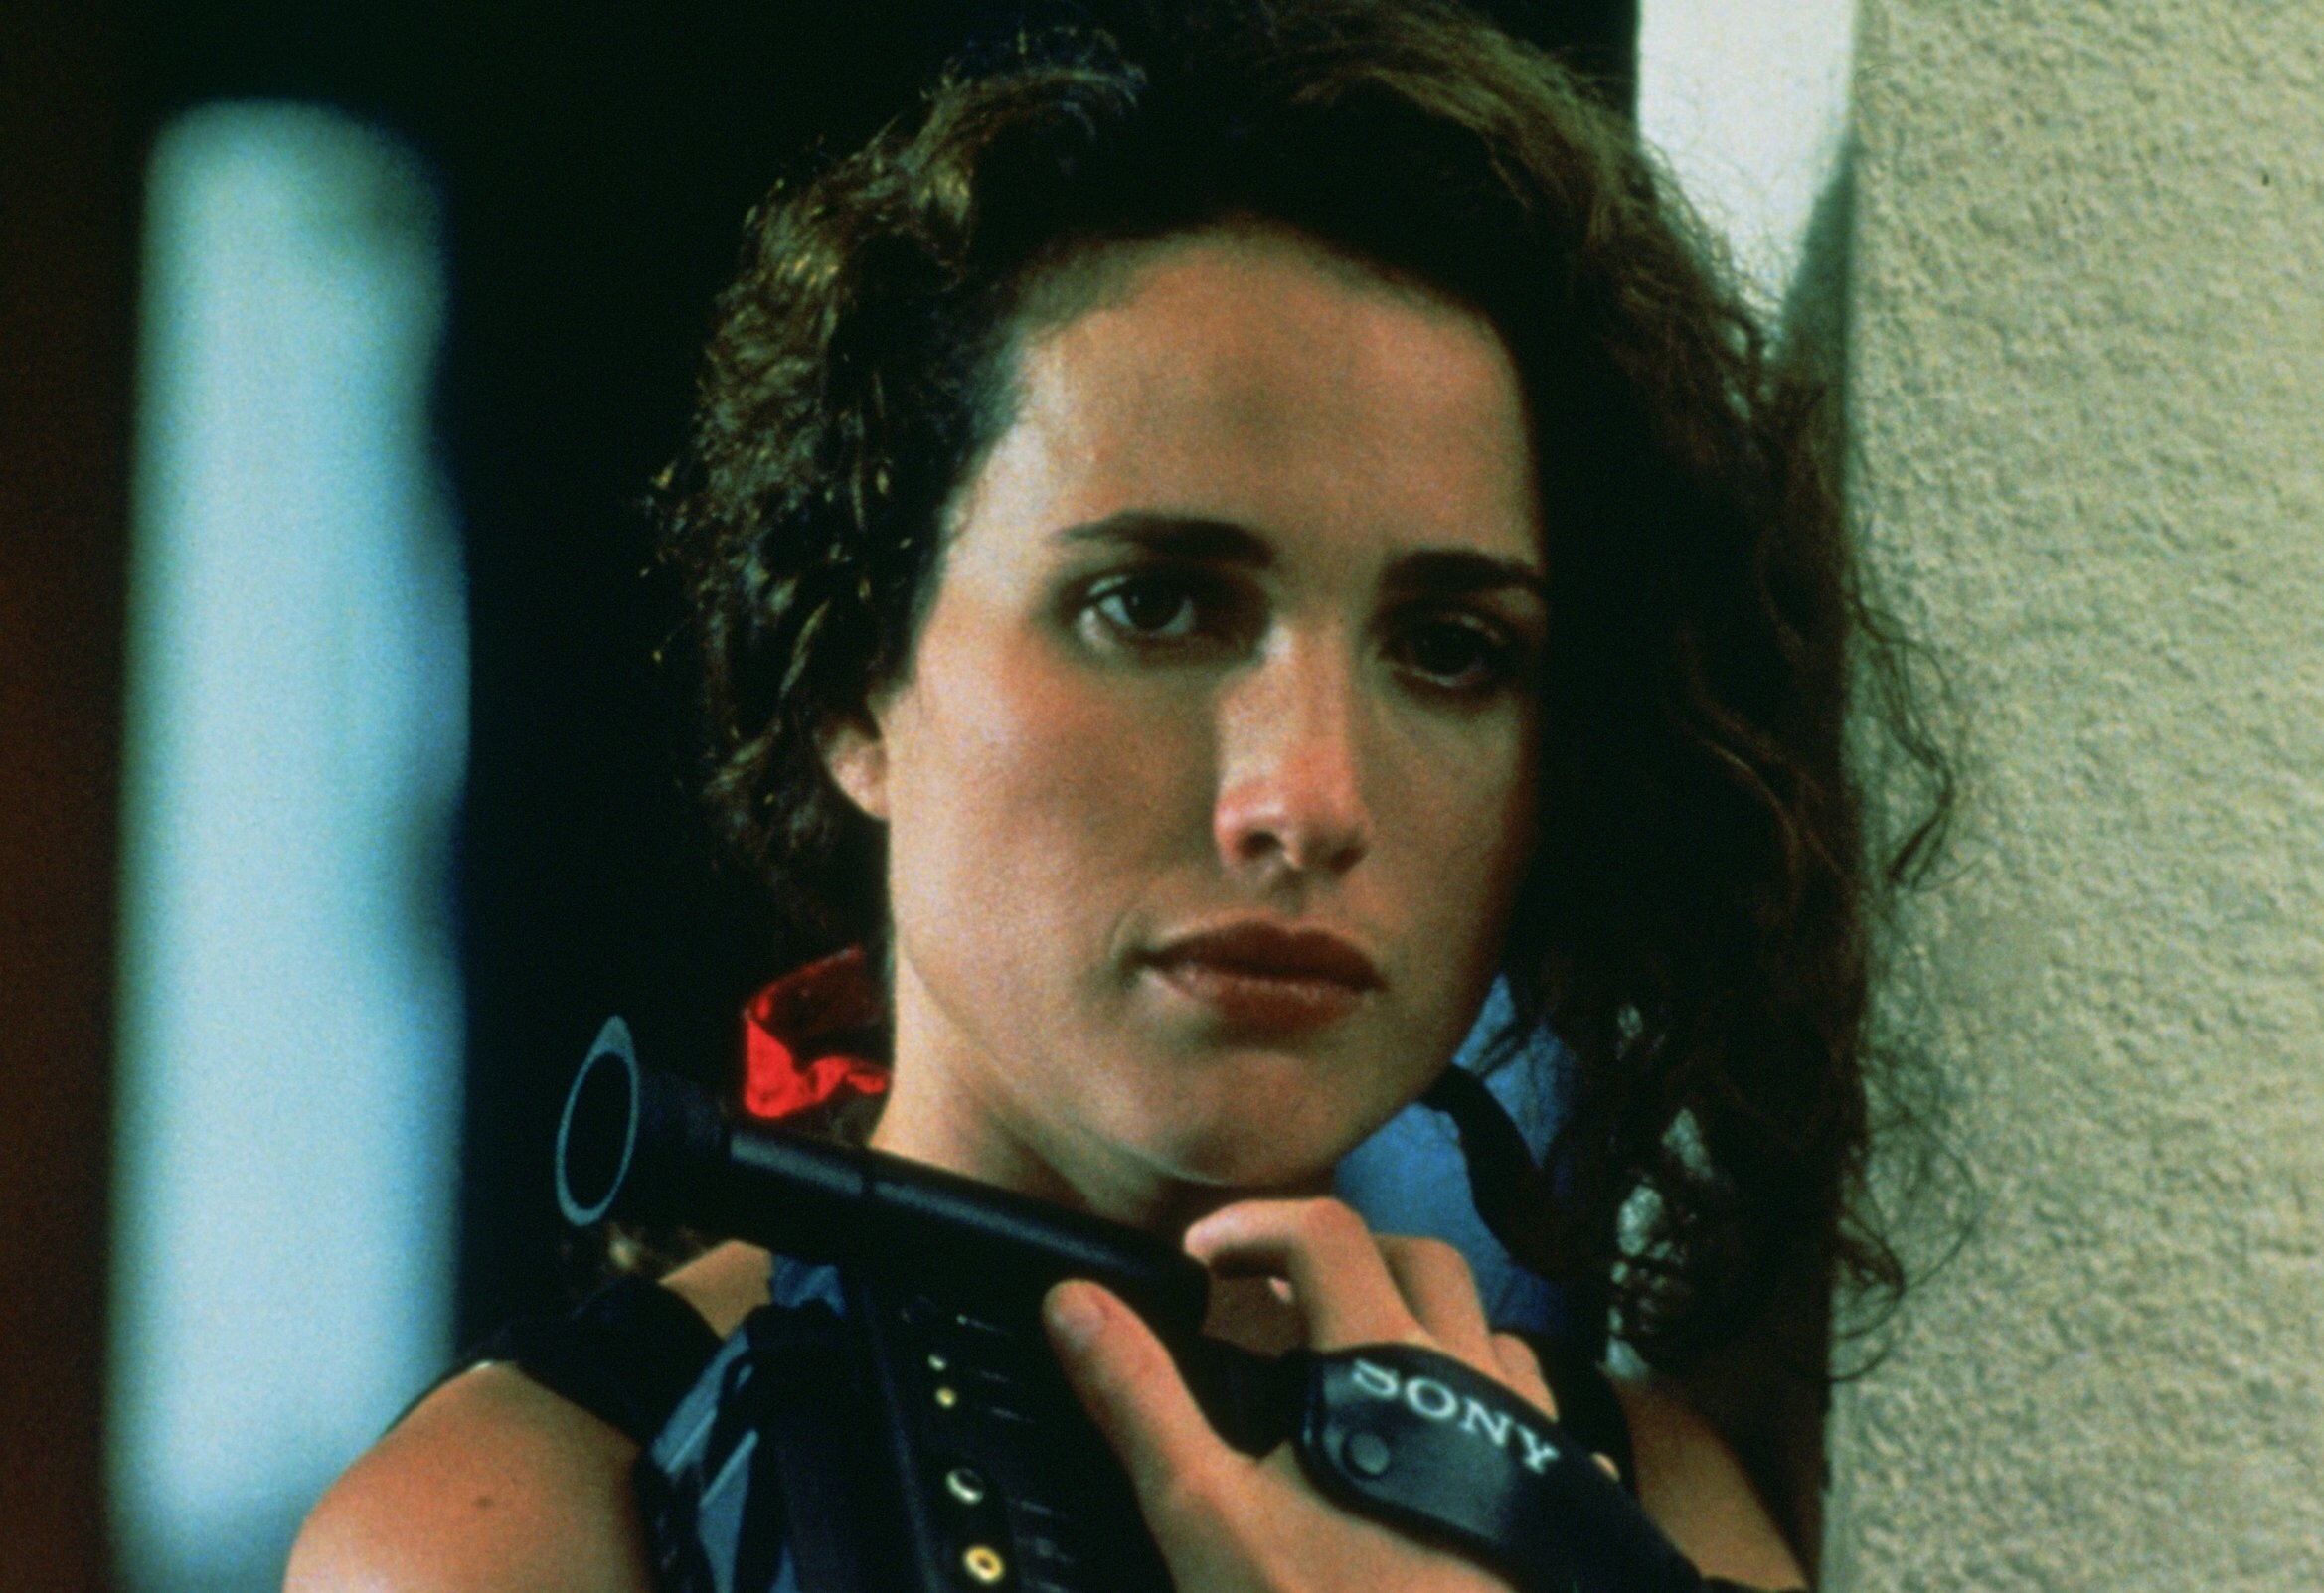 Andie MacDowell looking towards the camera, wistfully holding a camcorder